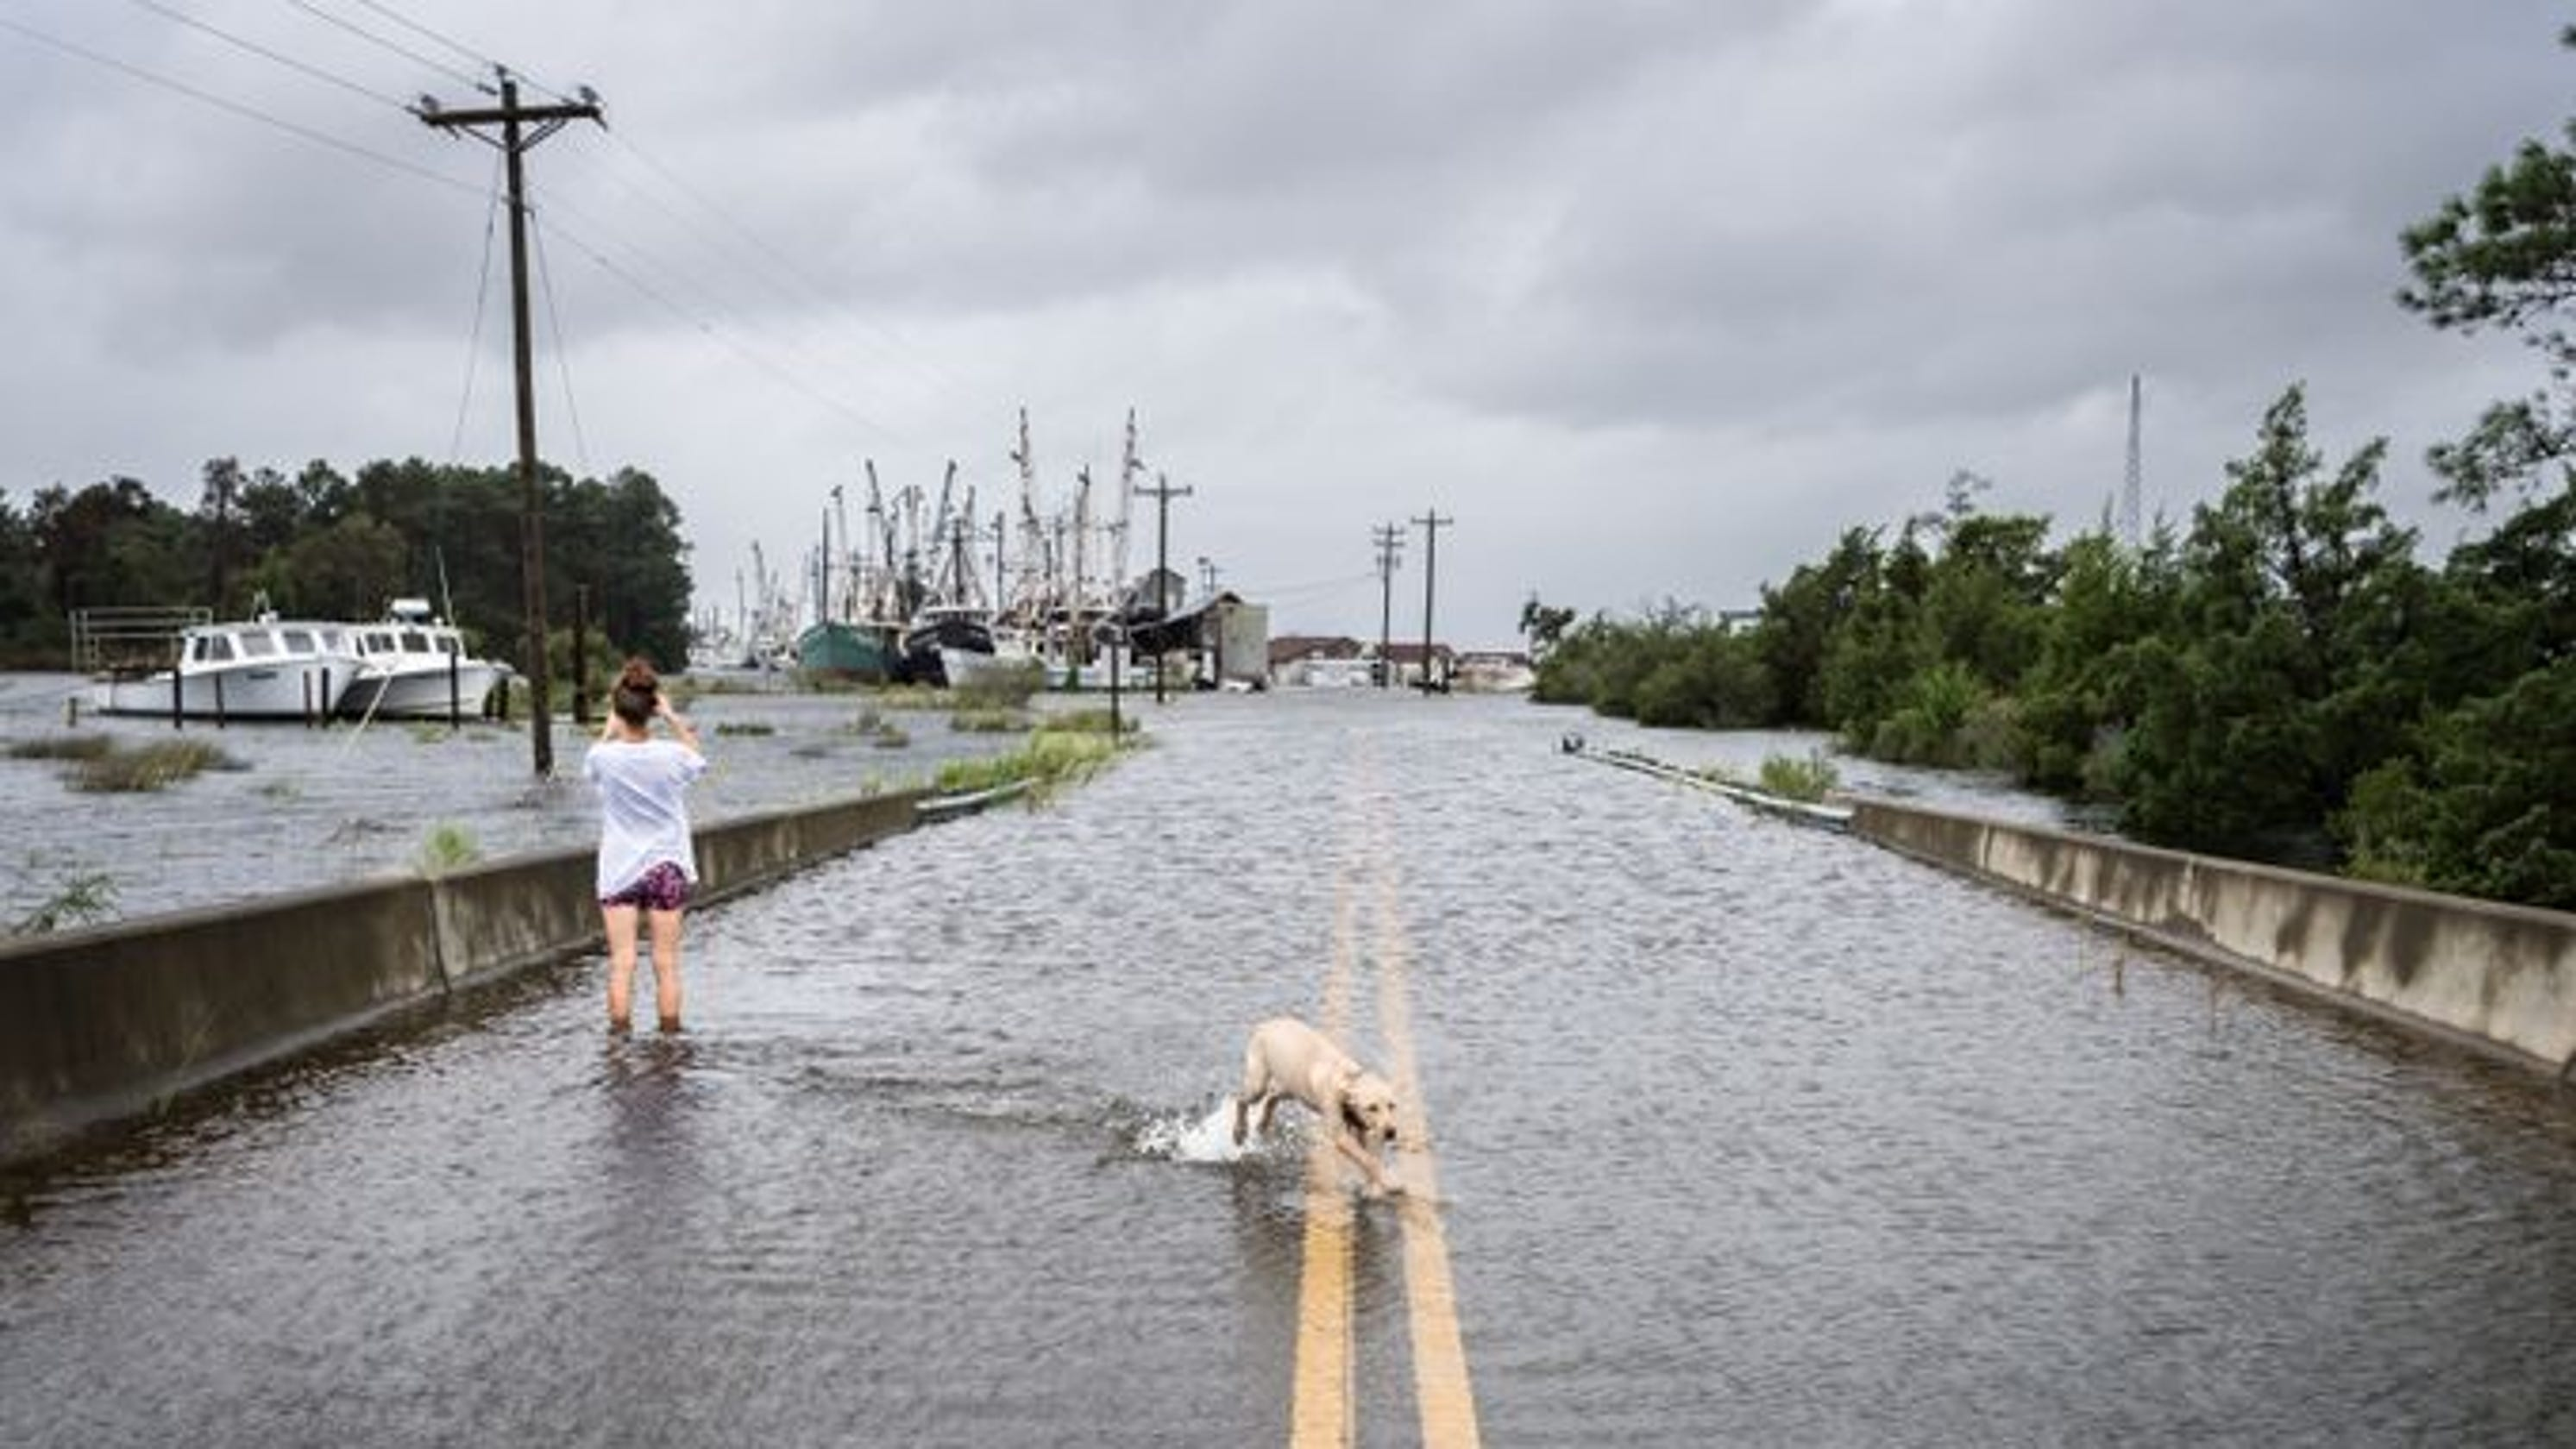 Hurricane Florence New Bern Still Needs Rescues Outer Banks Damaged